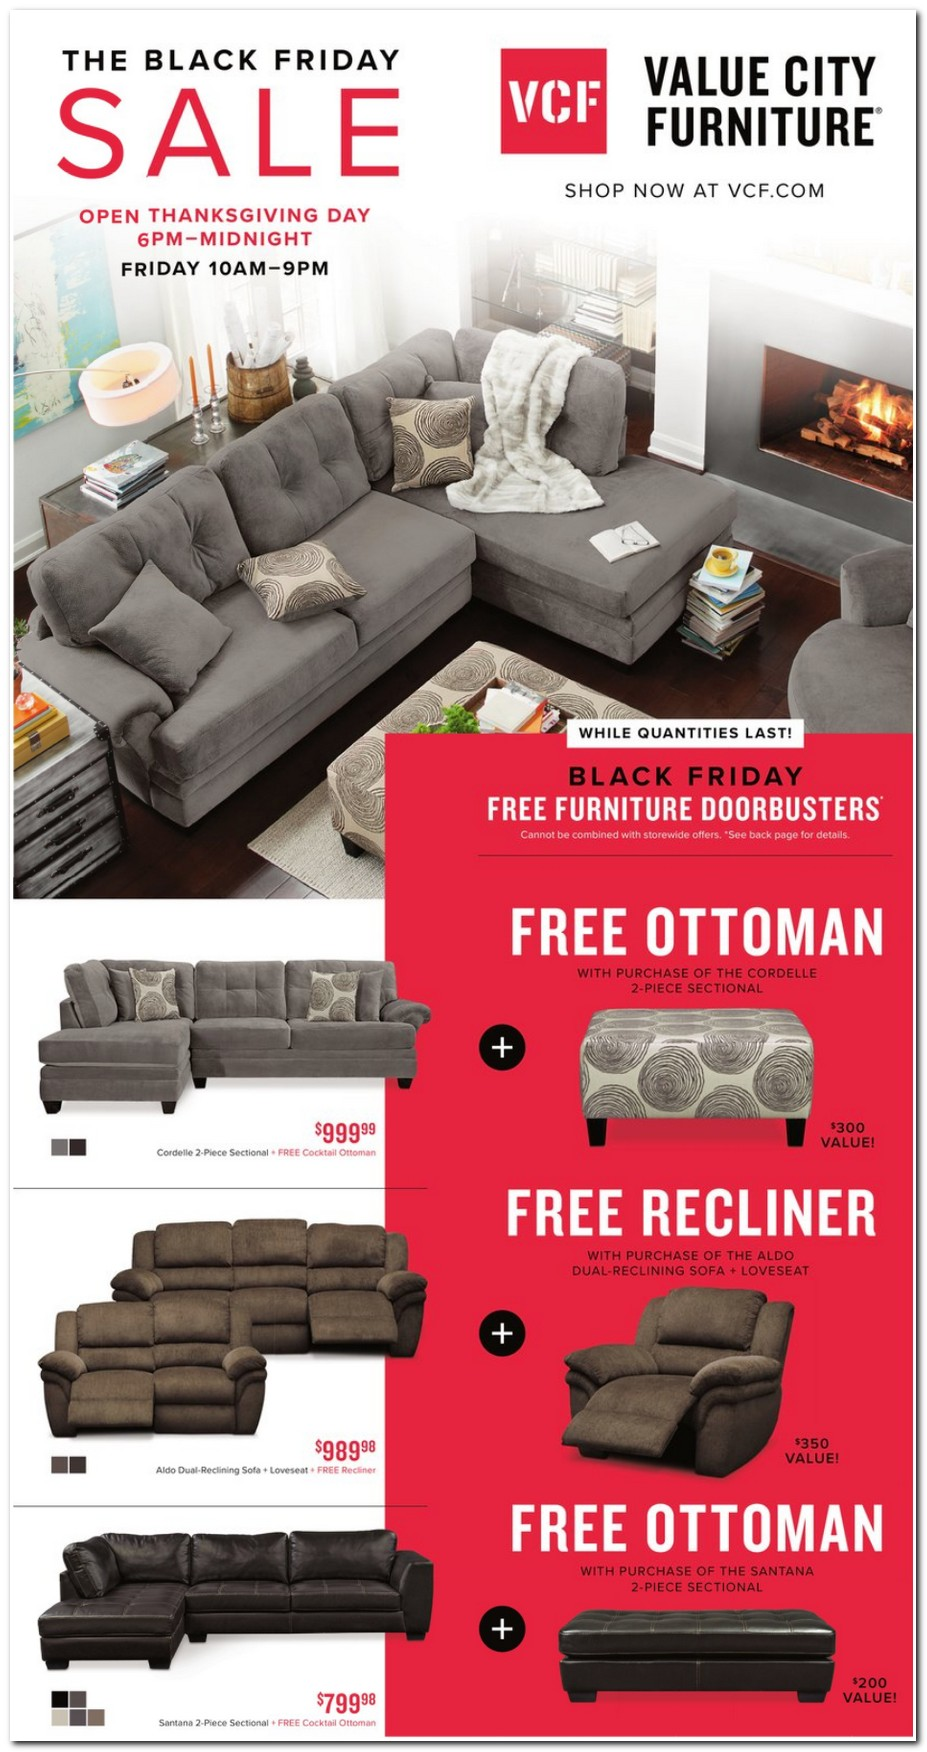 Value City Furniture Black Friday Ads Sales Deals 2017